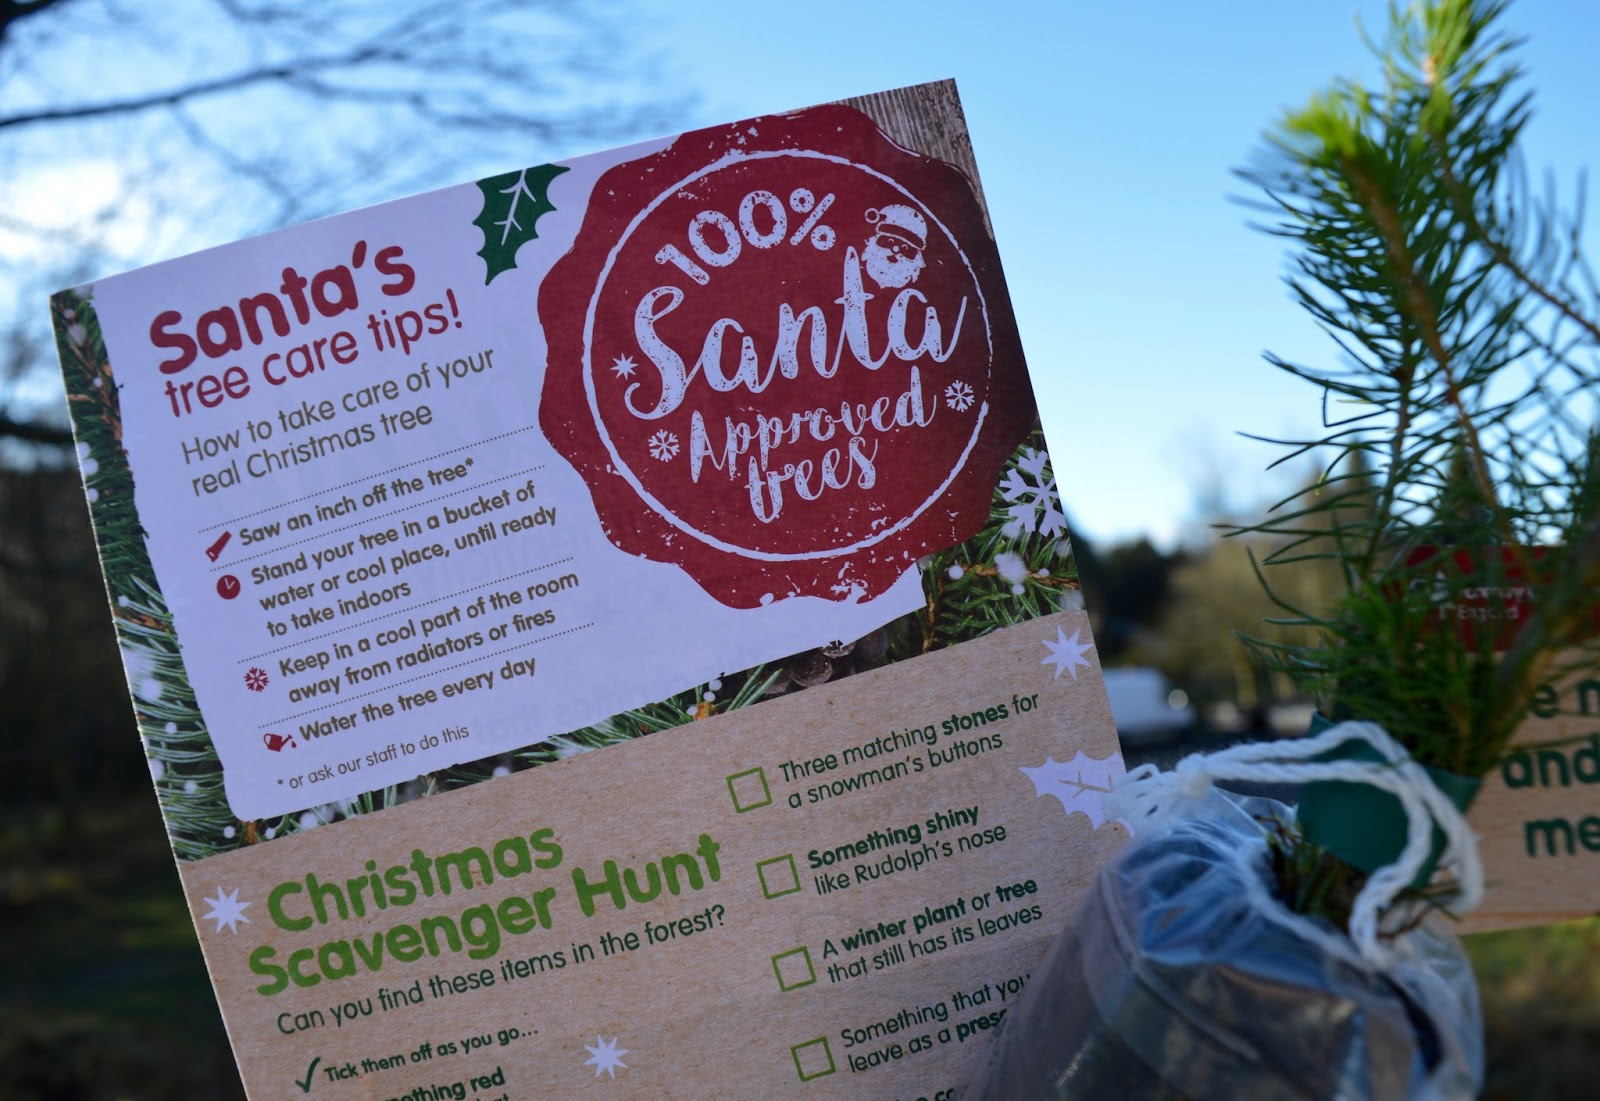 Why you should choose a real, sustainable Christmas tree from a Forestry Commission Forest (Hamsterley Forest in Durham and Kielder Forest in Northumberland) - Santa approved certificate, Christmas scavenger hunt and tree care tips